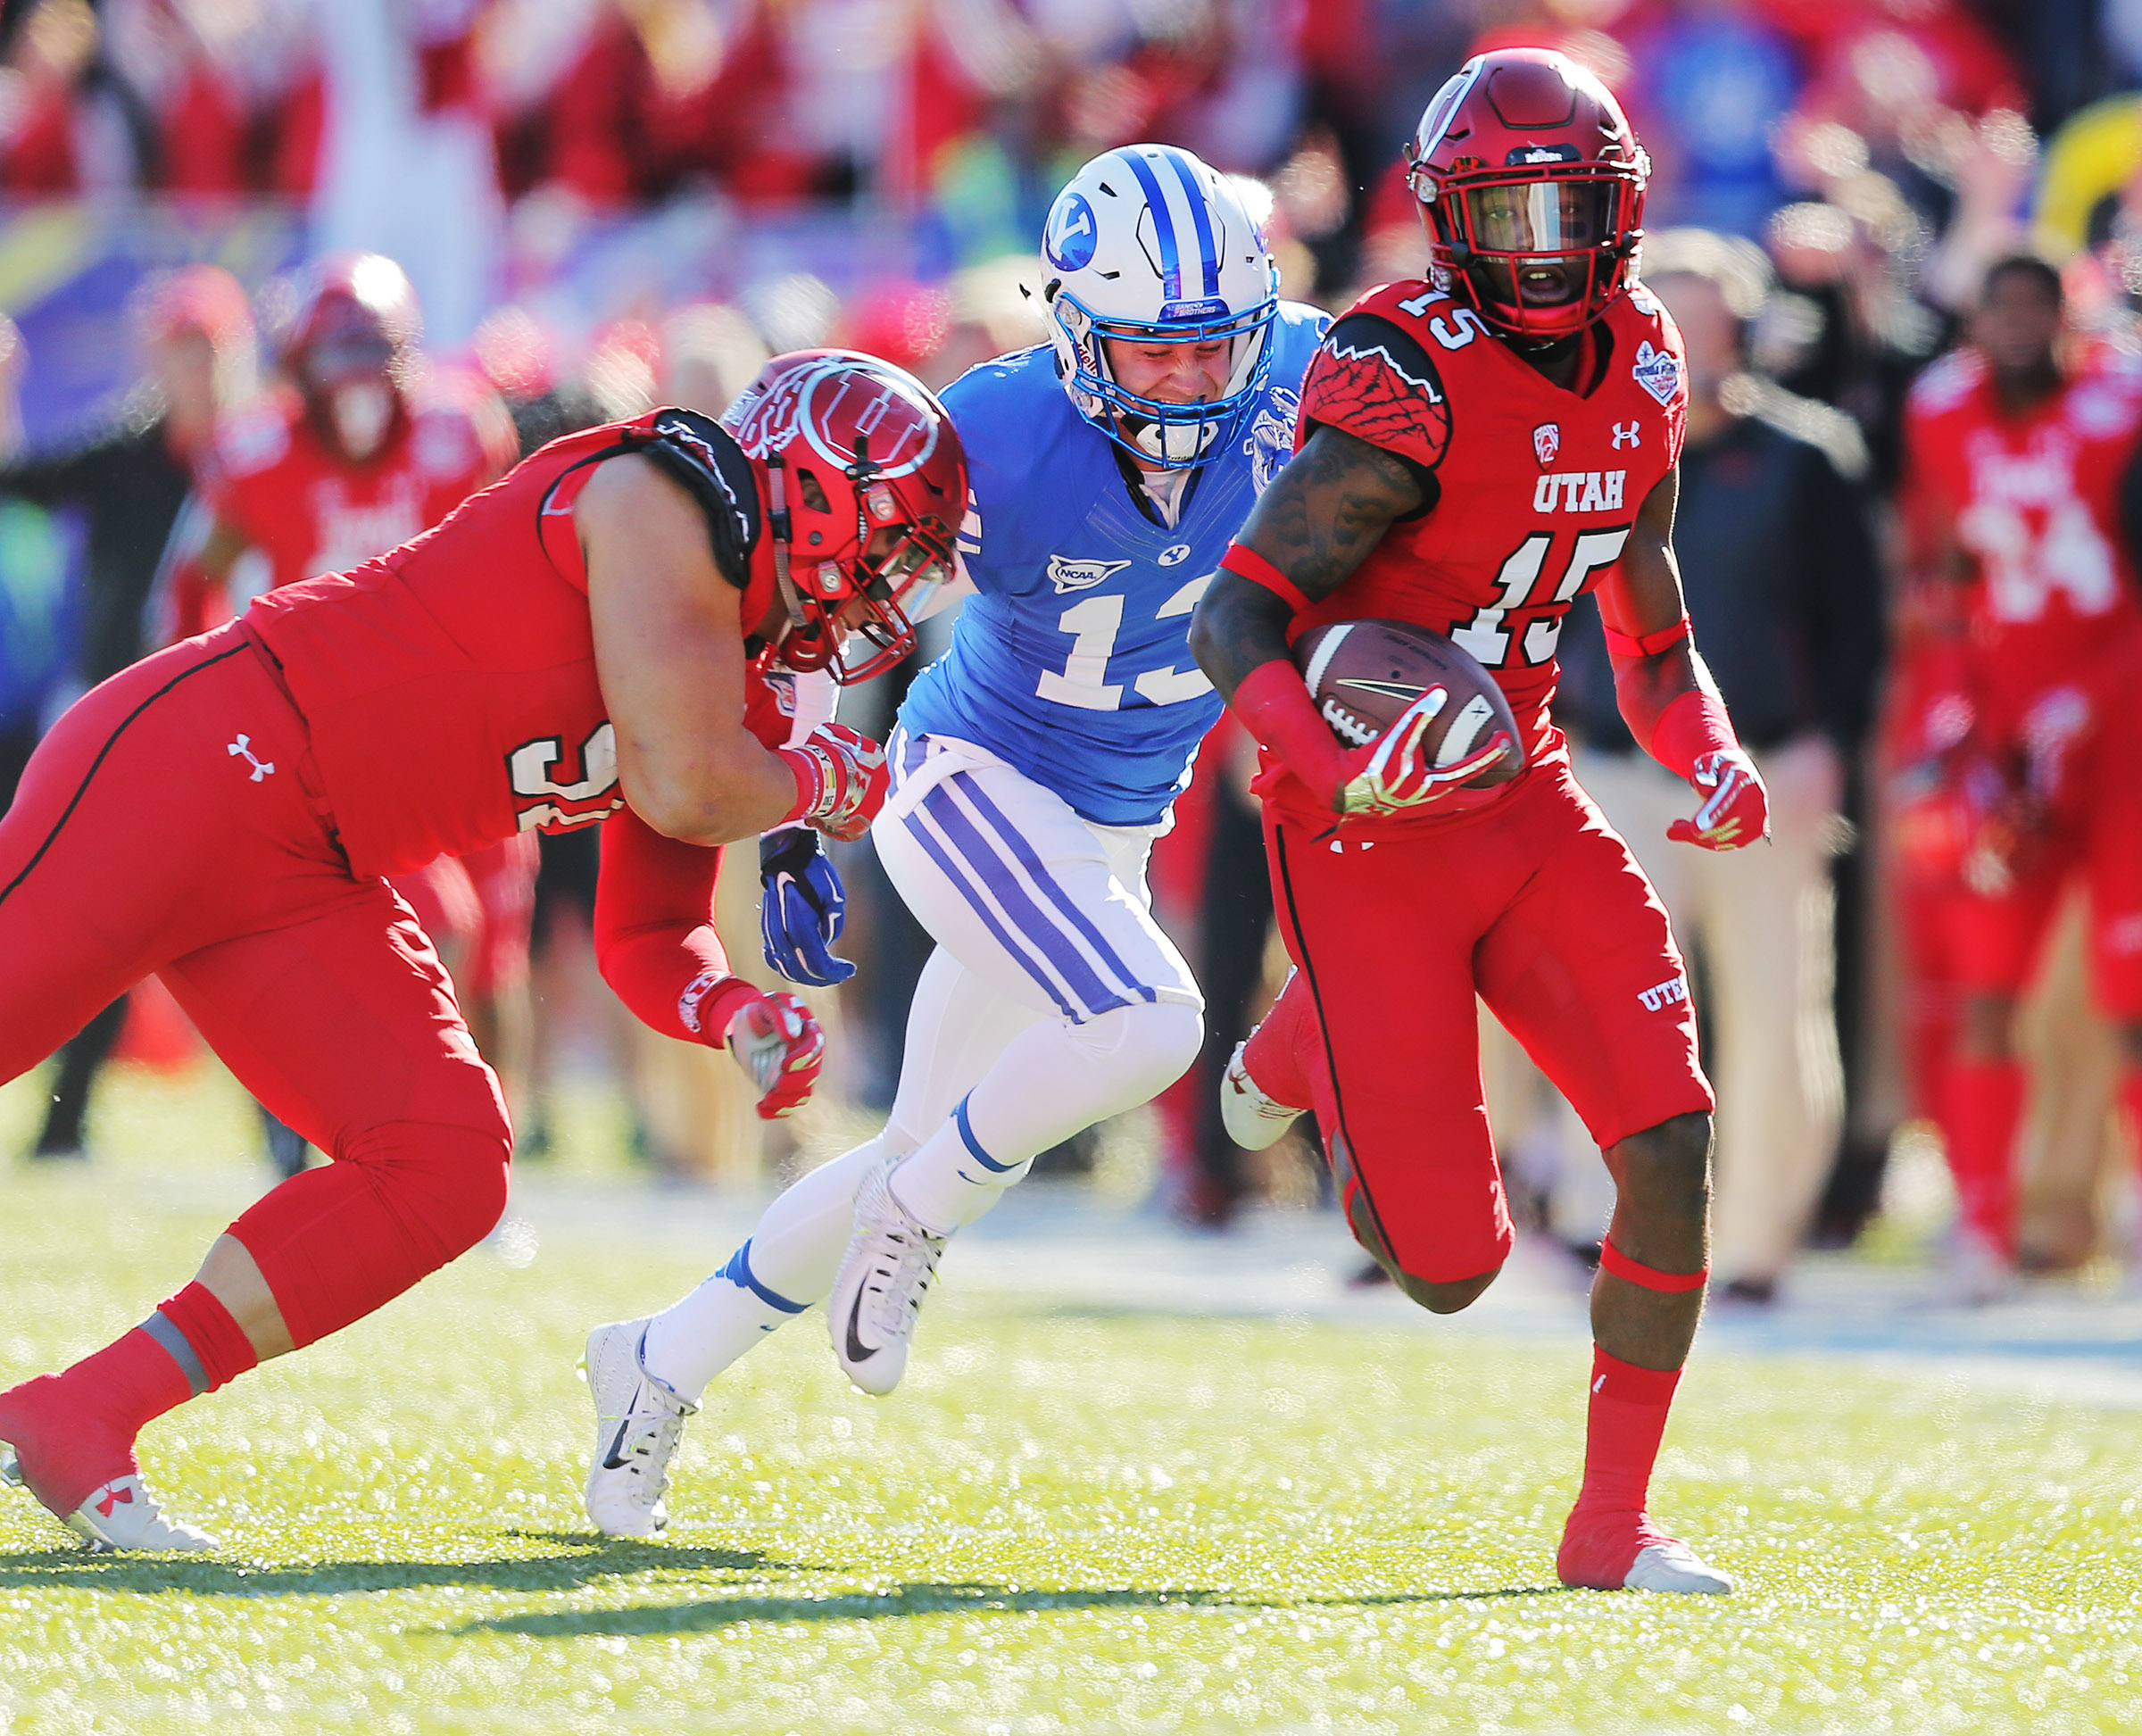 Utah defensive back Dominique Hatfield returns an interception for a TD as Utah and BYU play in Las Vegas Bowl in 2015.